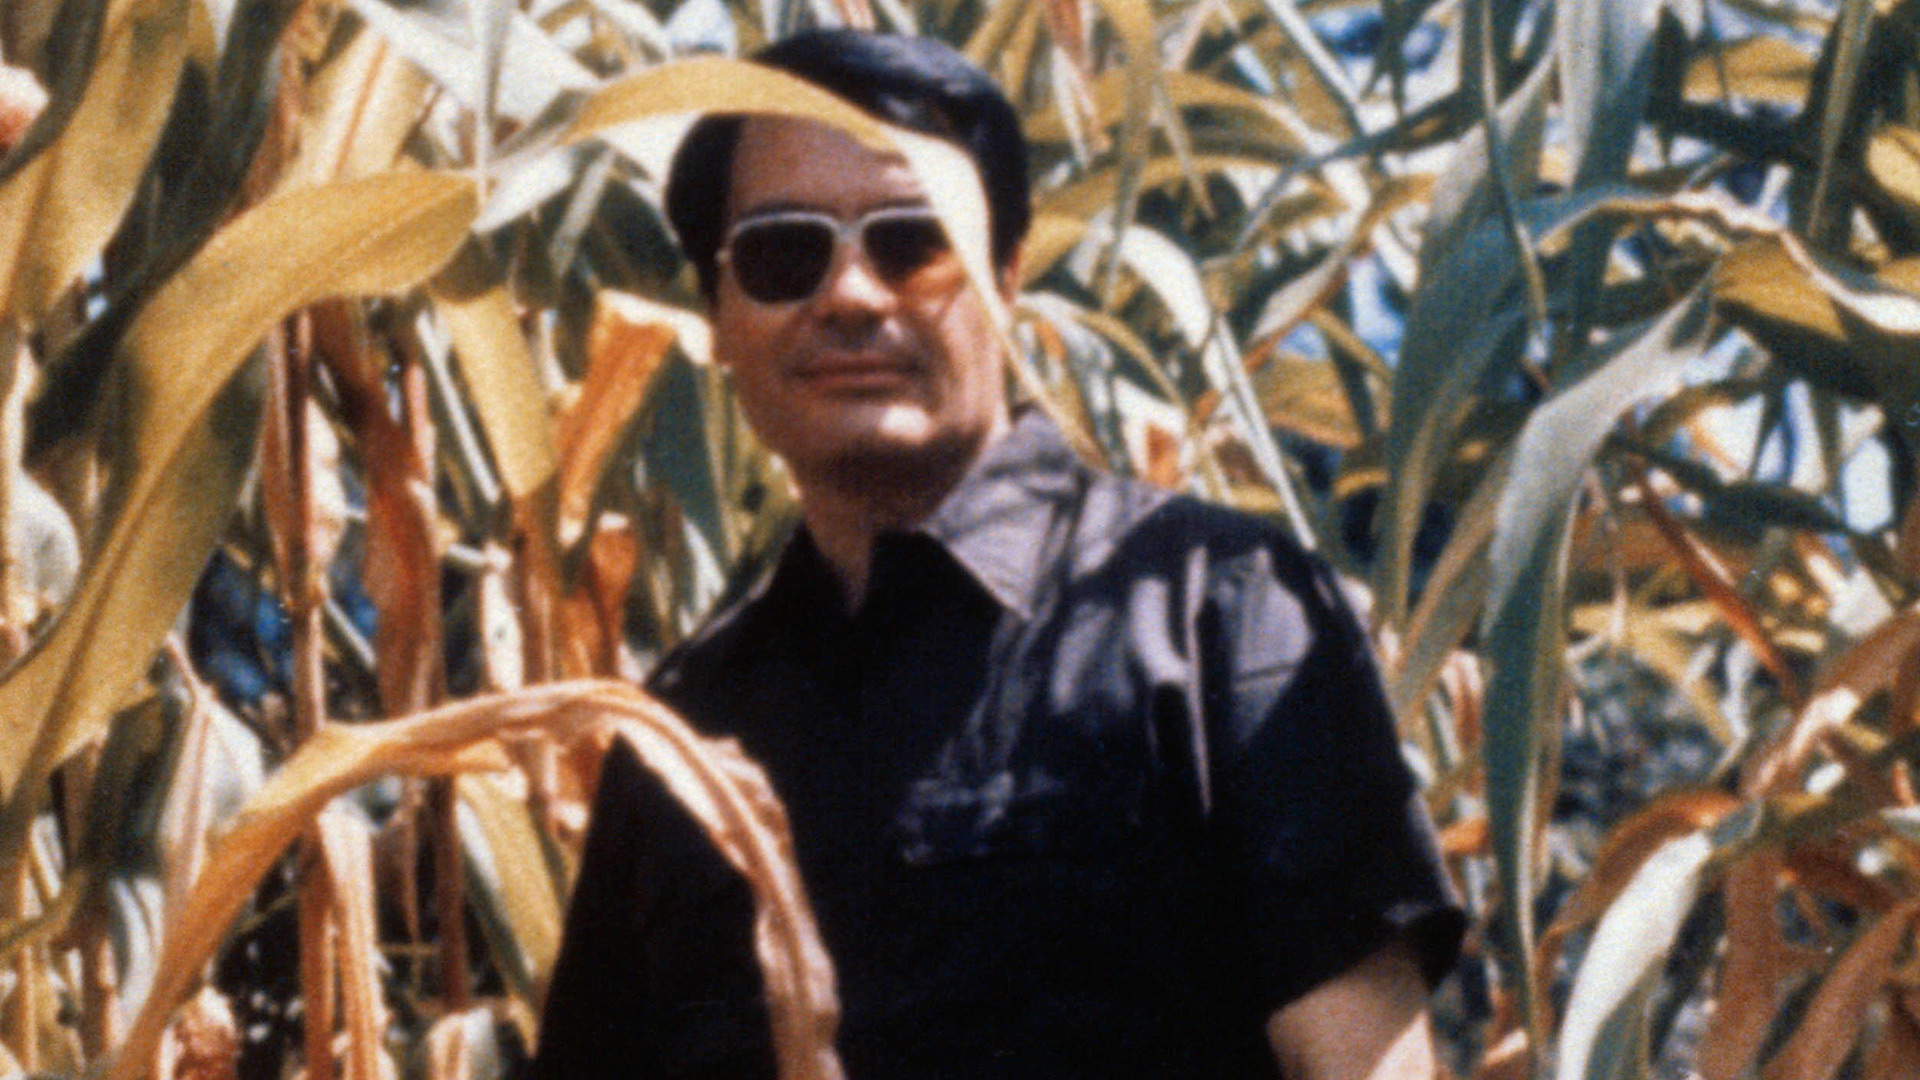 How Did Jim Jones Really Die? Over 40 Years After Jonestown Massacre, Unanswered Questions Linger